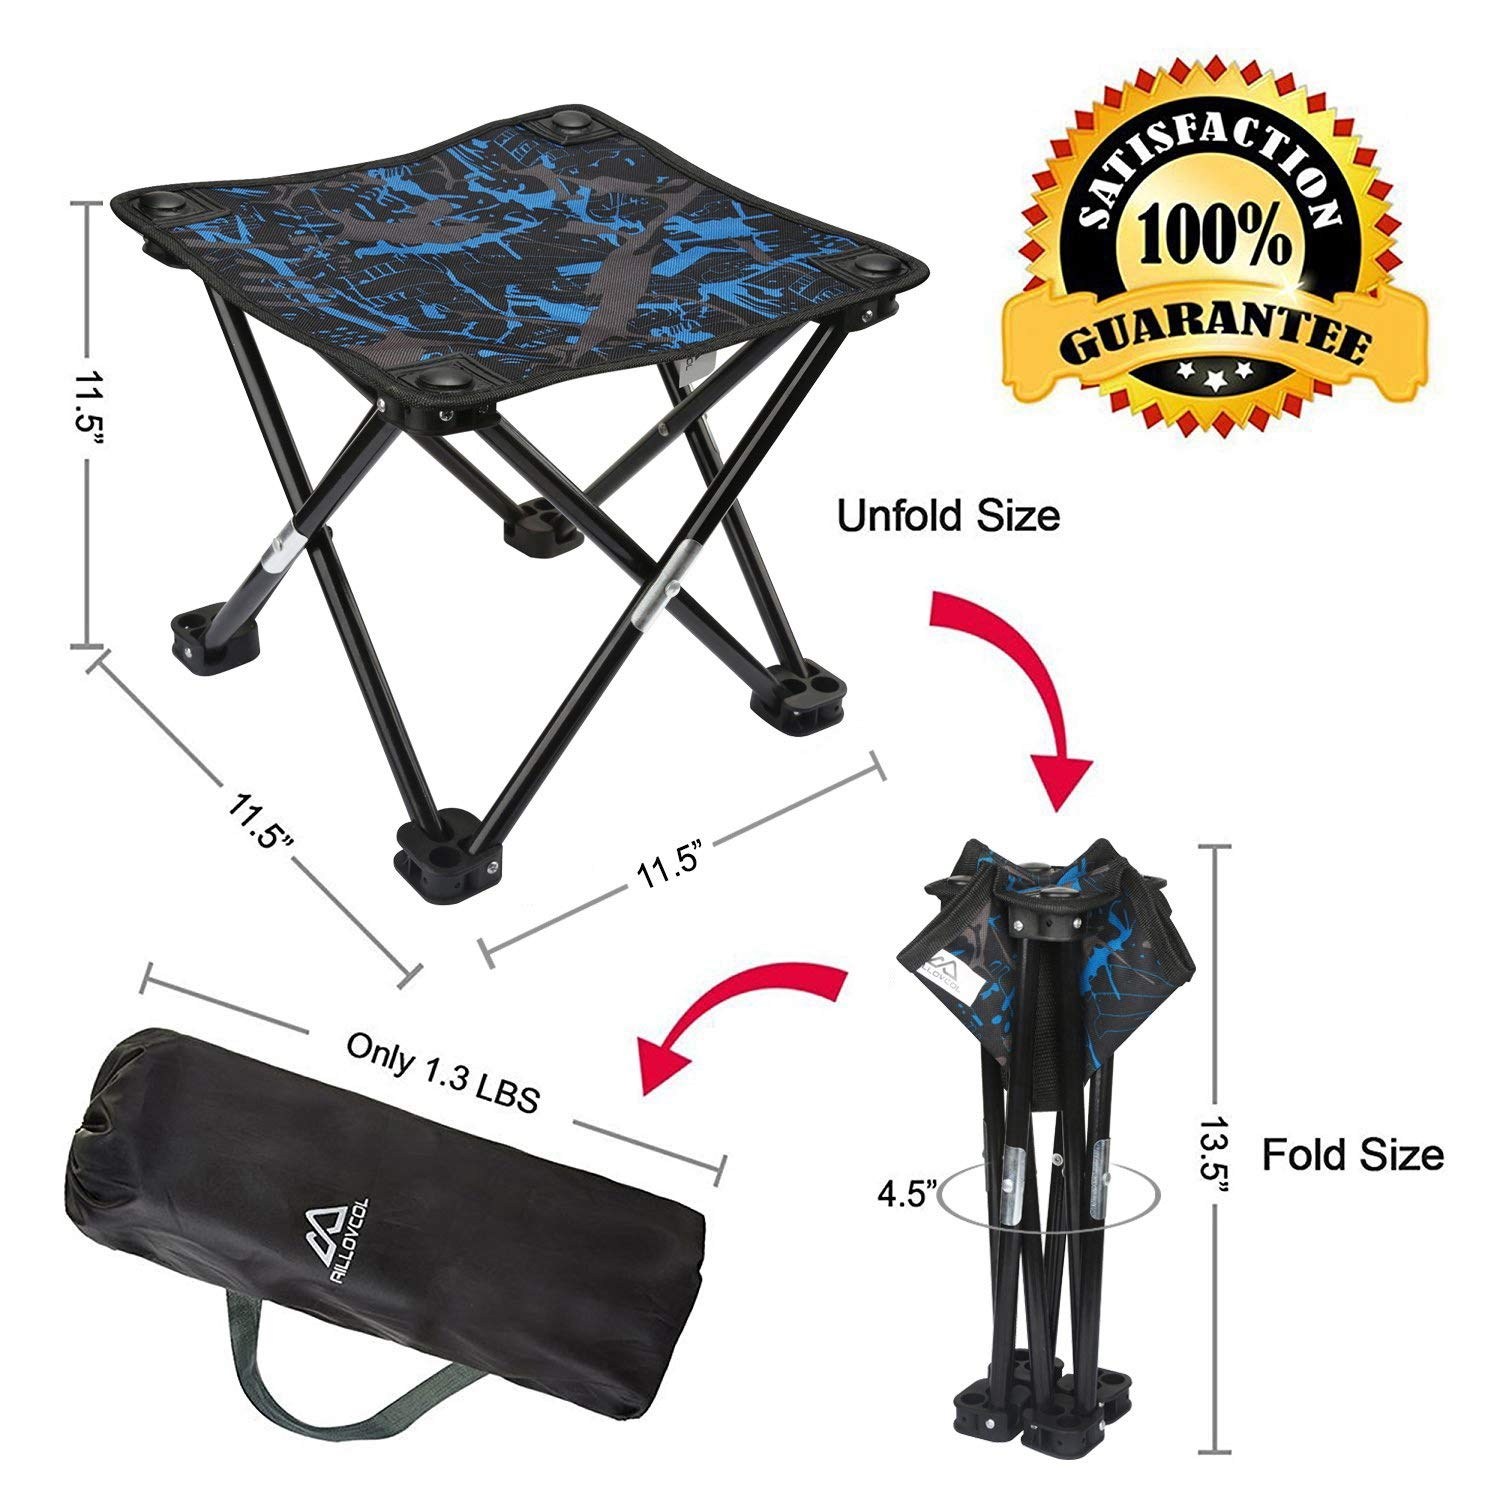 AILLOVCOL Mini Portable Folding Stool, Mini Camp Stool, Outdoor Folding Chair for BBQ,Camping,Fishing,Travel,Hiking,Garden,Beach,Oxford Cloth Seat ...